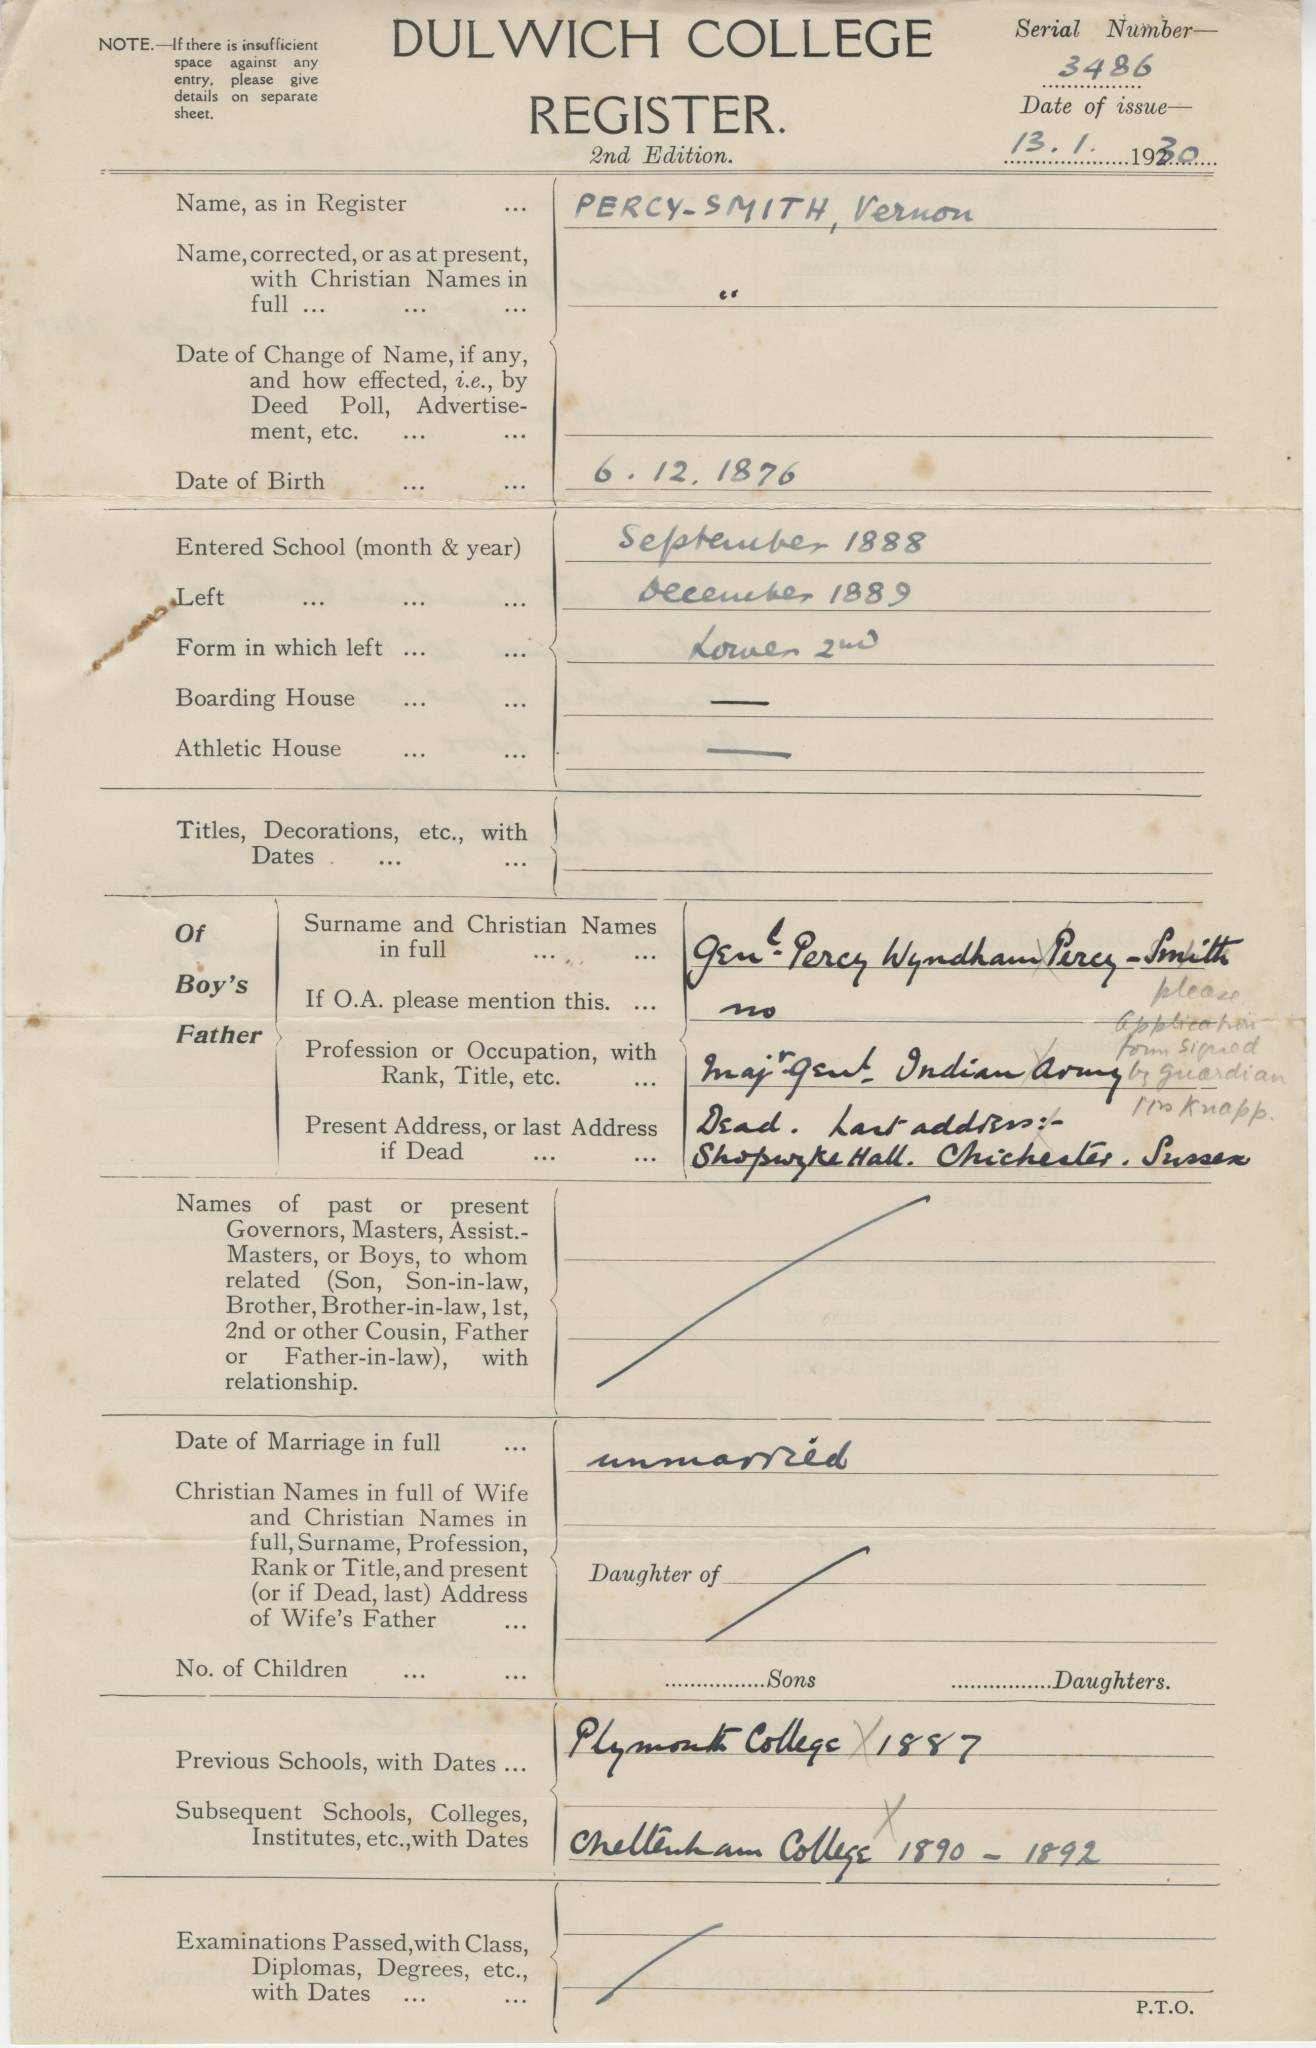 Percy Smith V Questionnaire 1